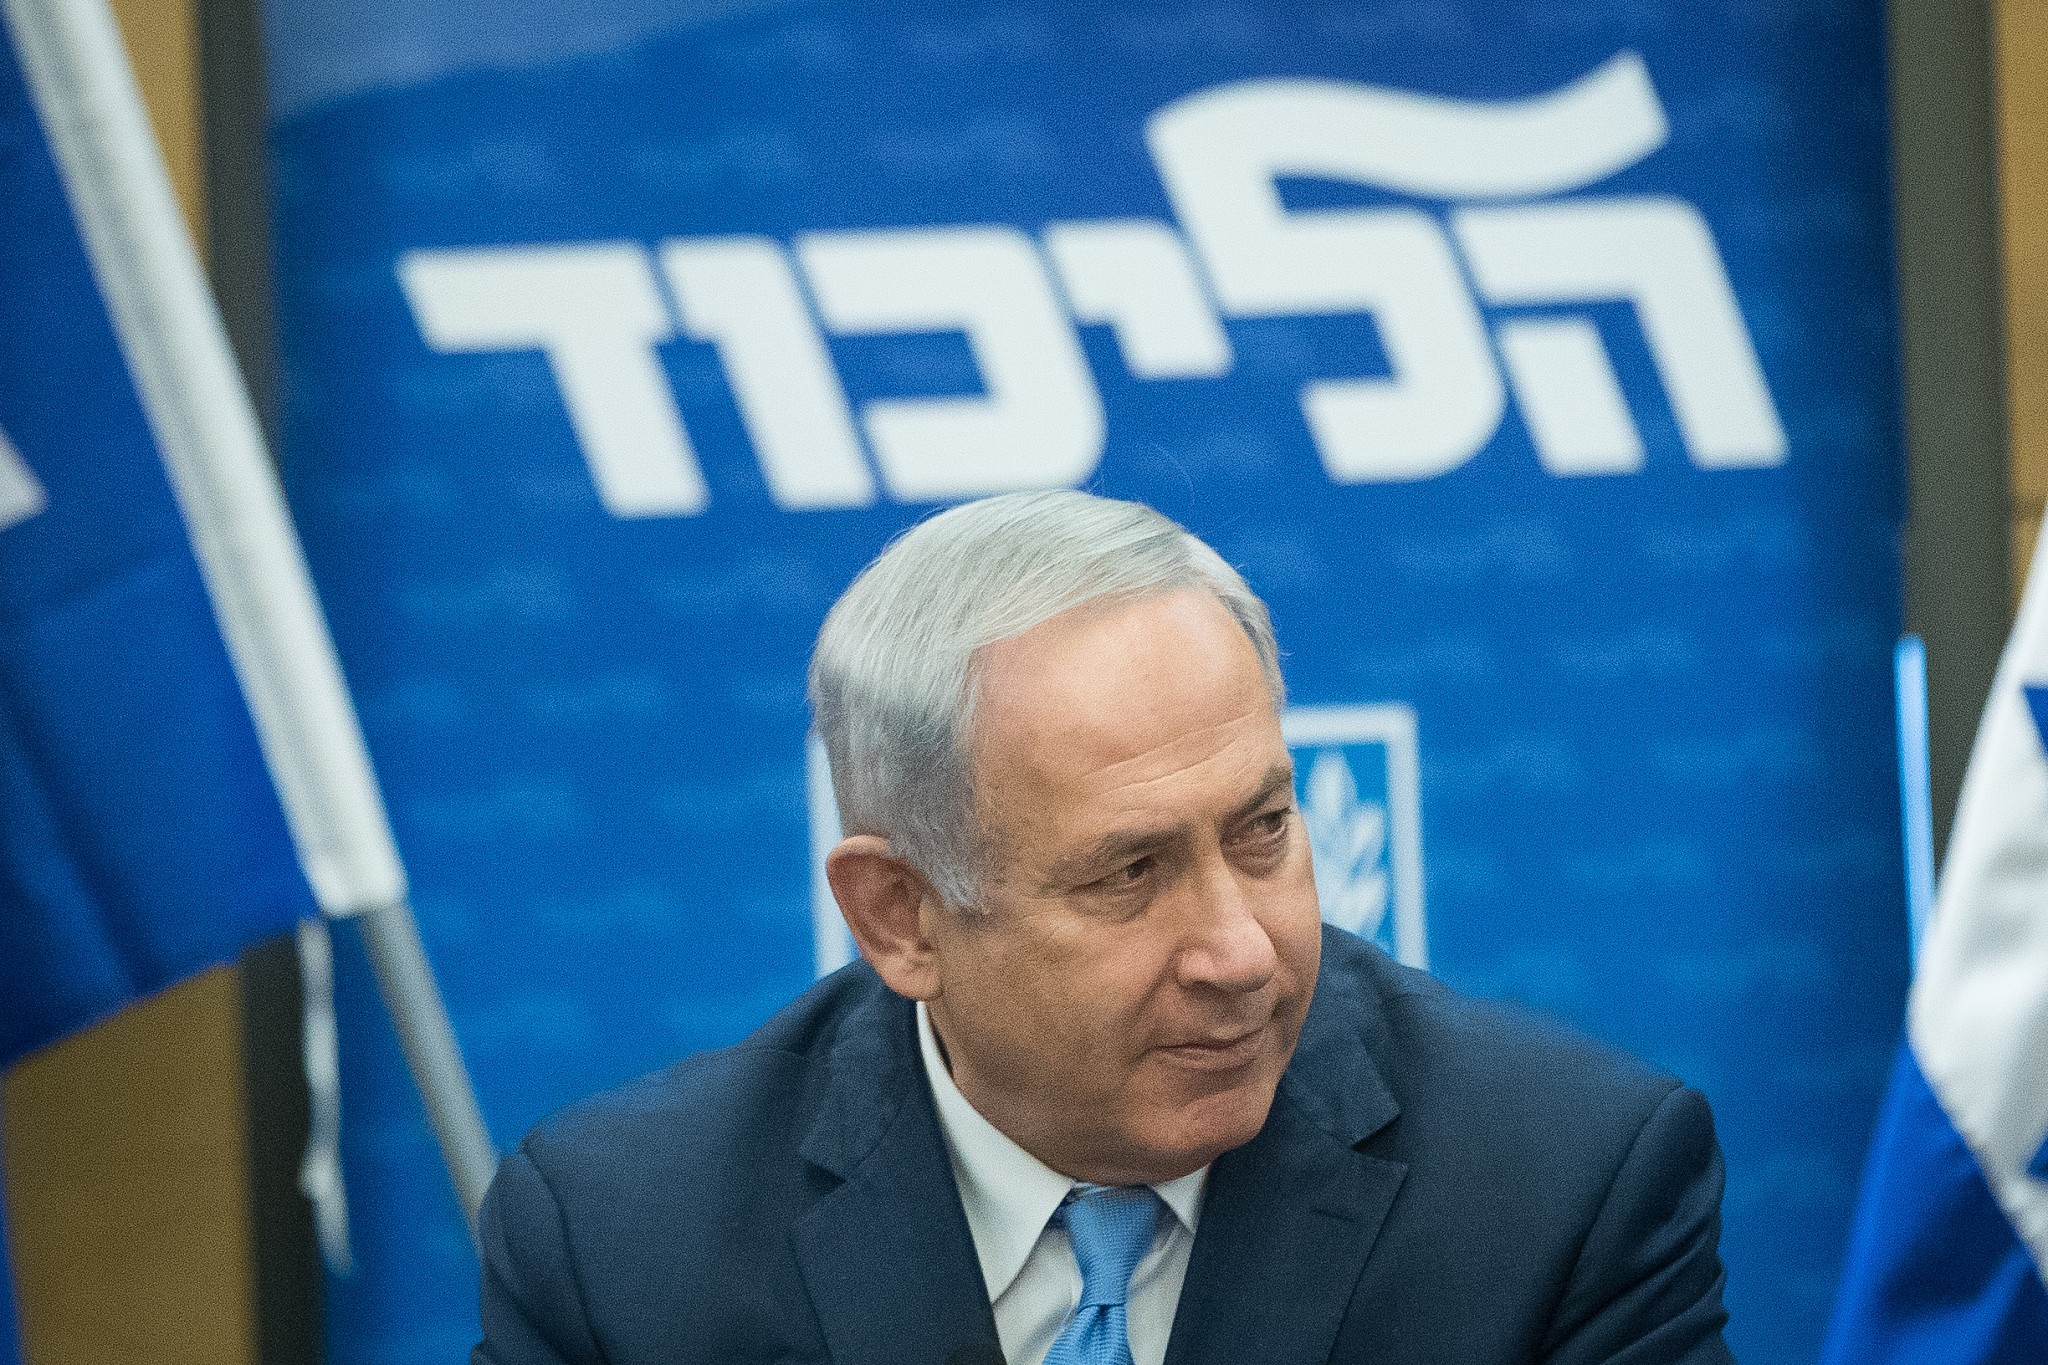 Israel's Netanyahu May Be Probed by Police over Fraud Allegations